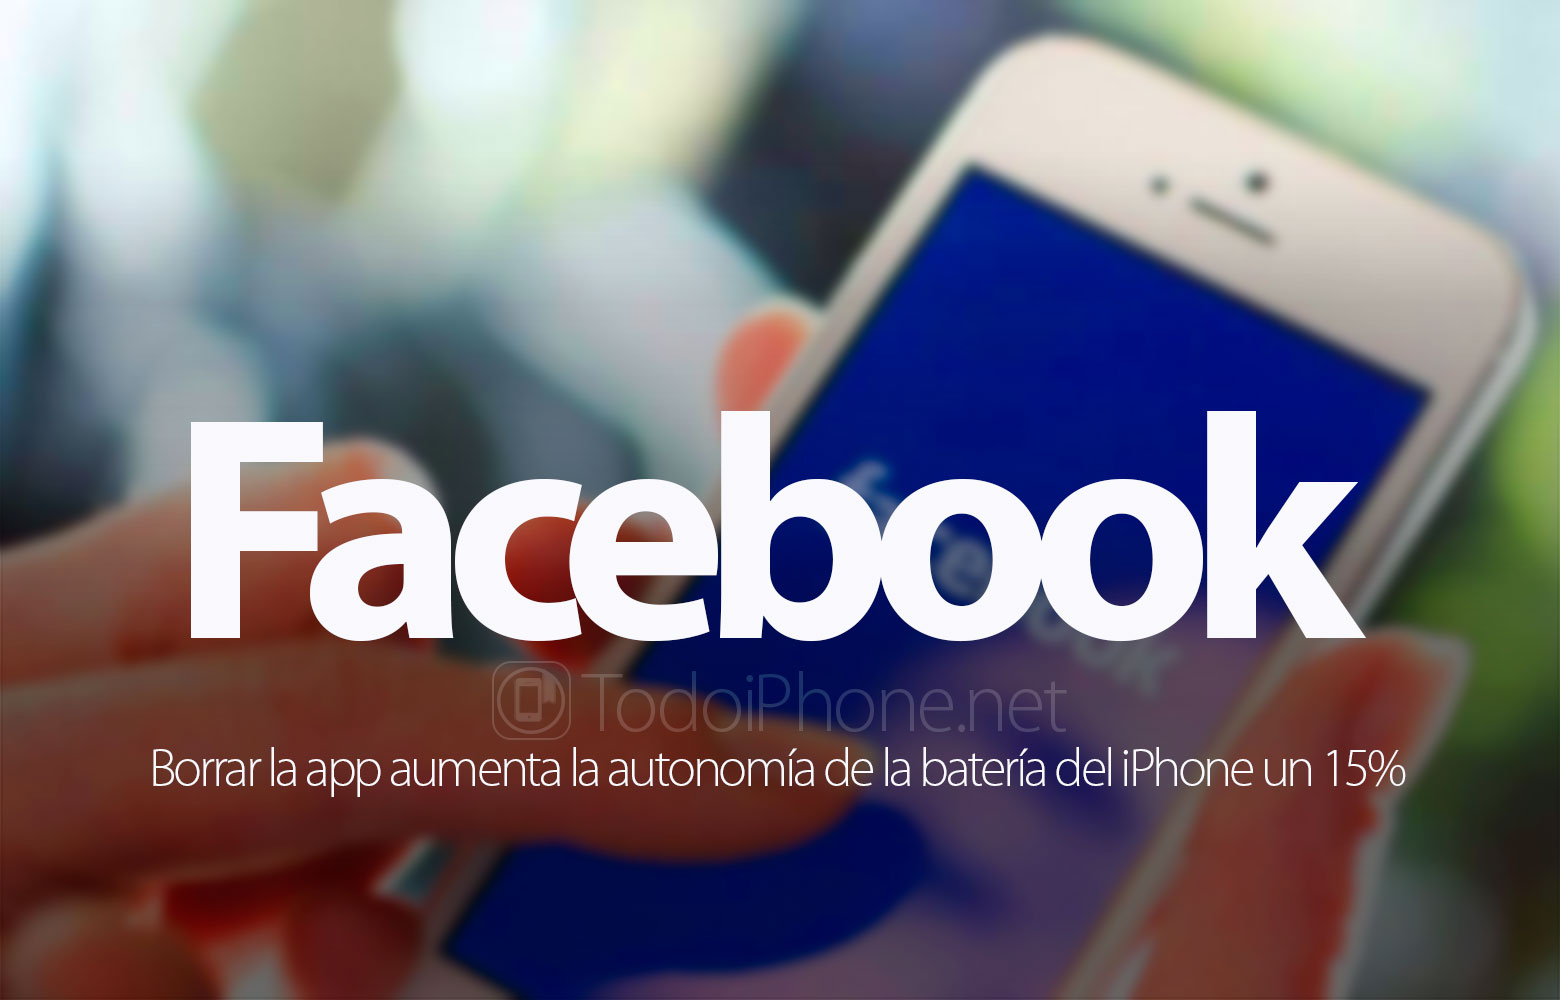 borrar-facebook-aumenta-autonomia-bateria-iphone